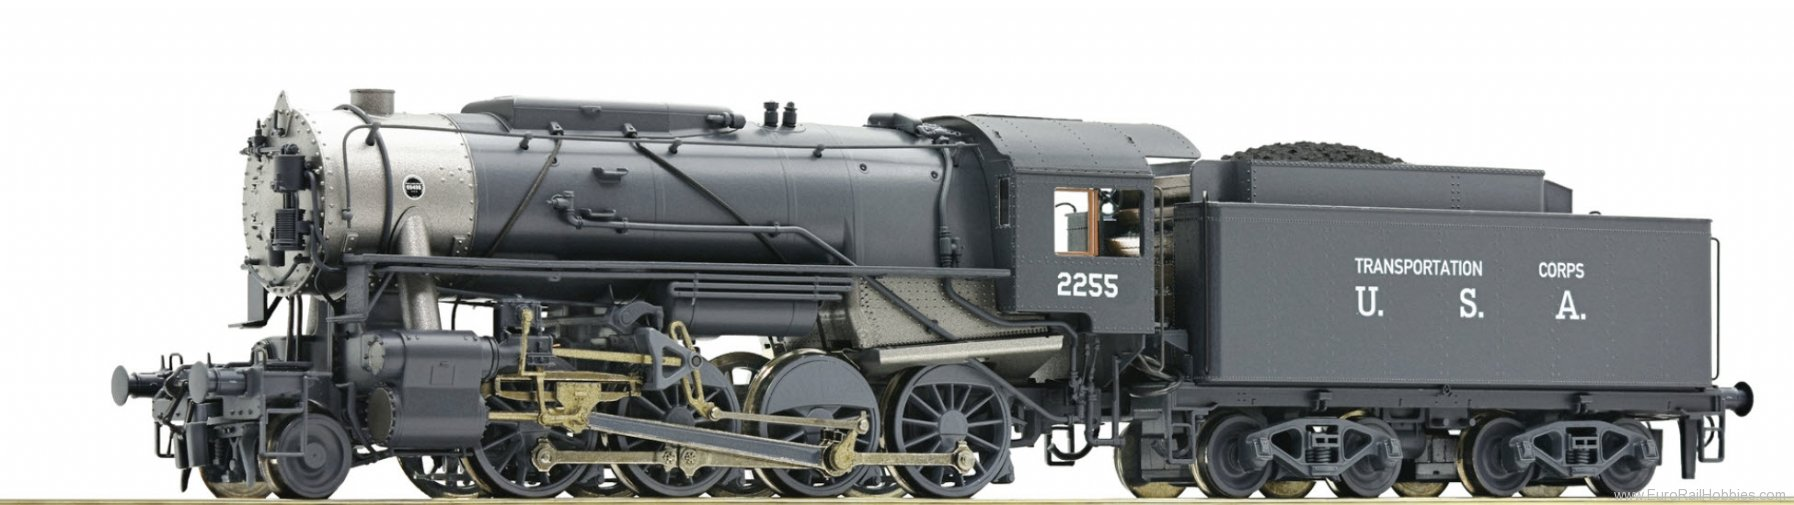 Roco 78151 Steam locomotive S 160, USTC (AC Digital Soun